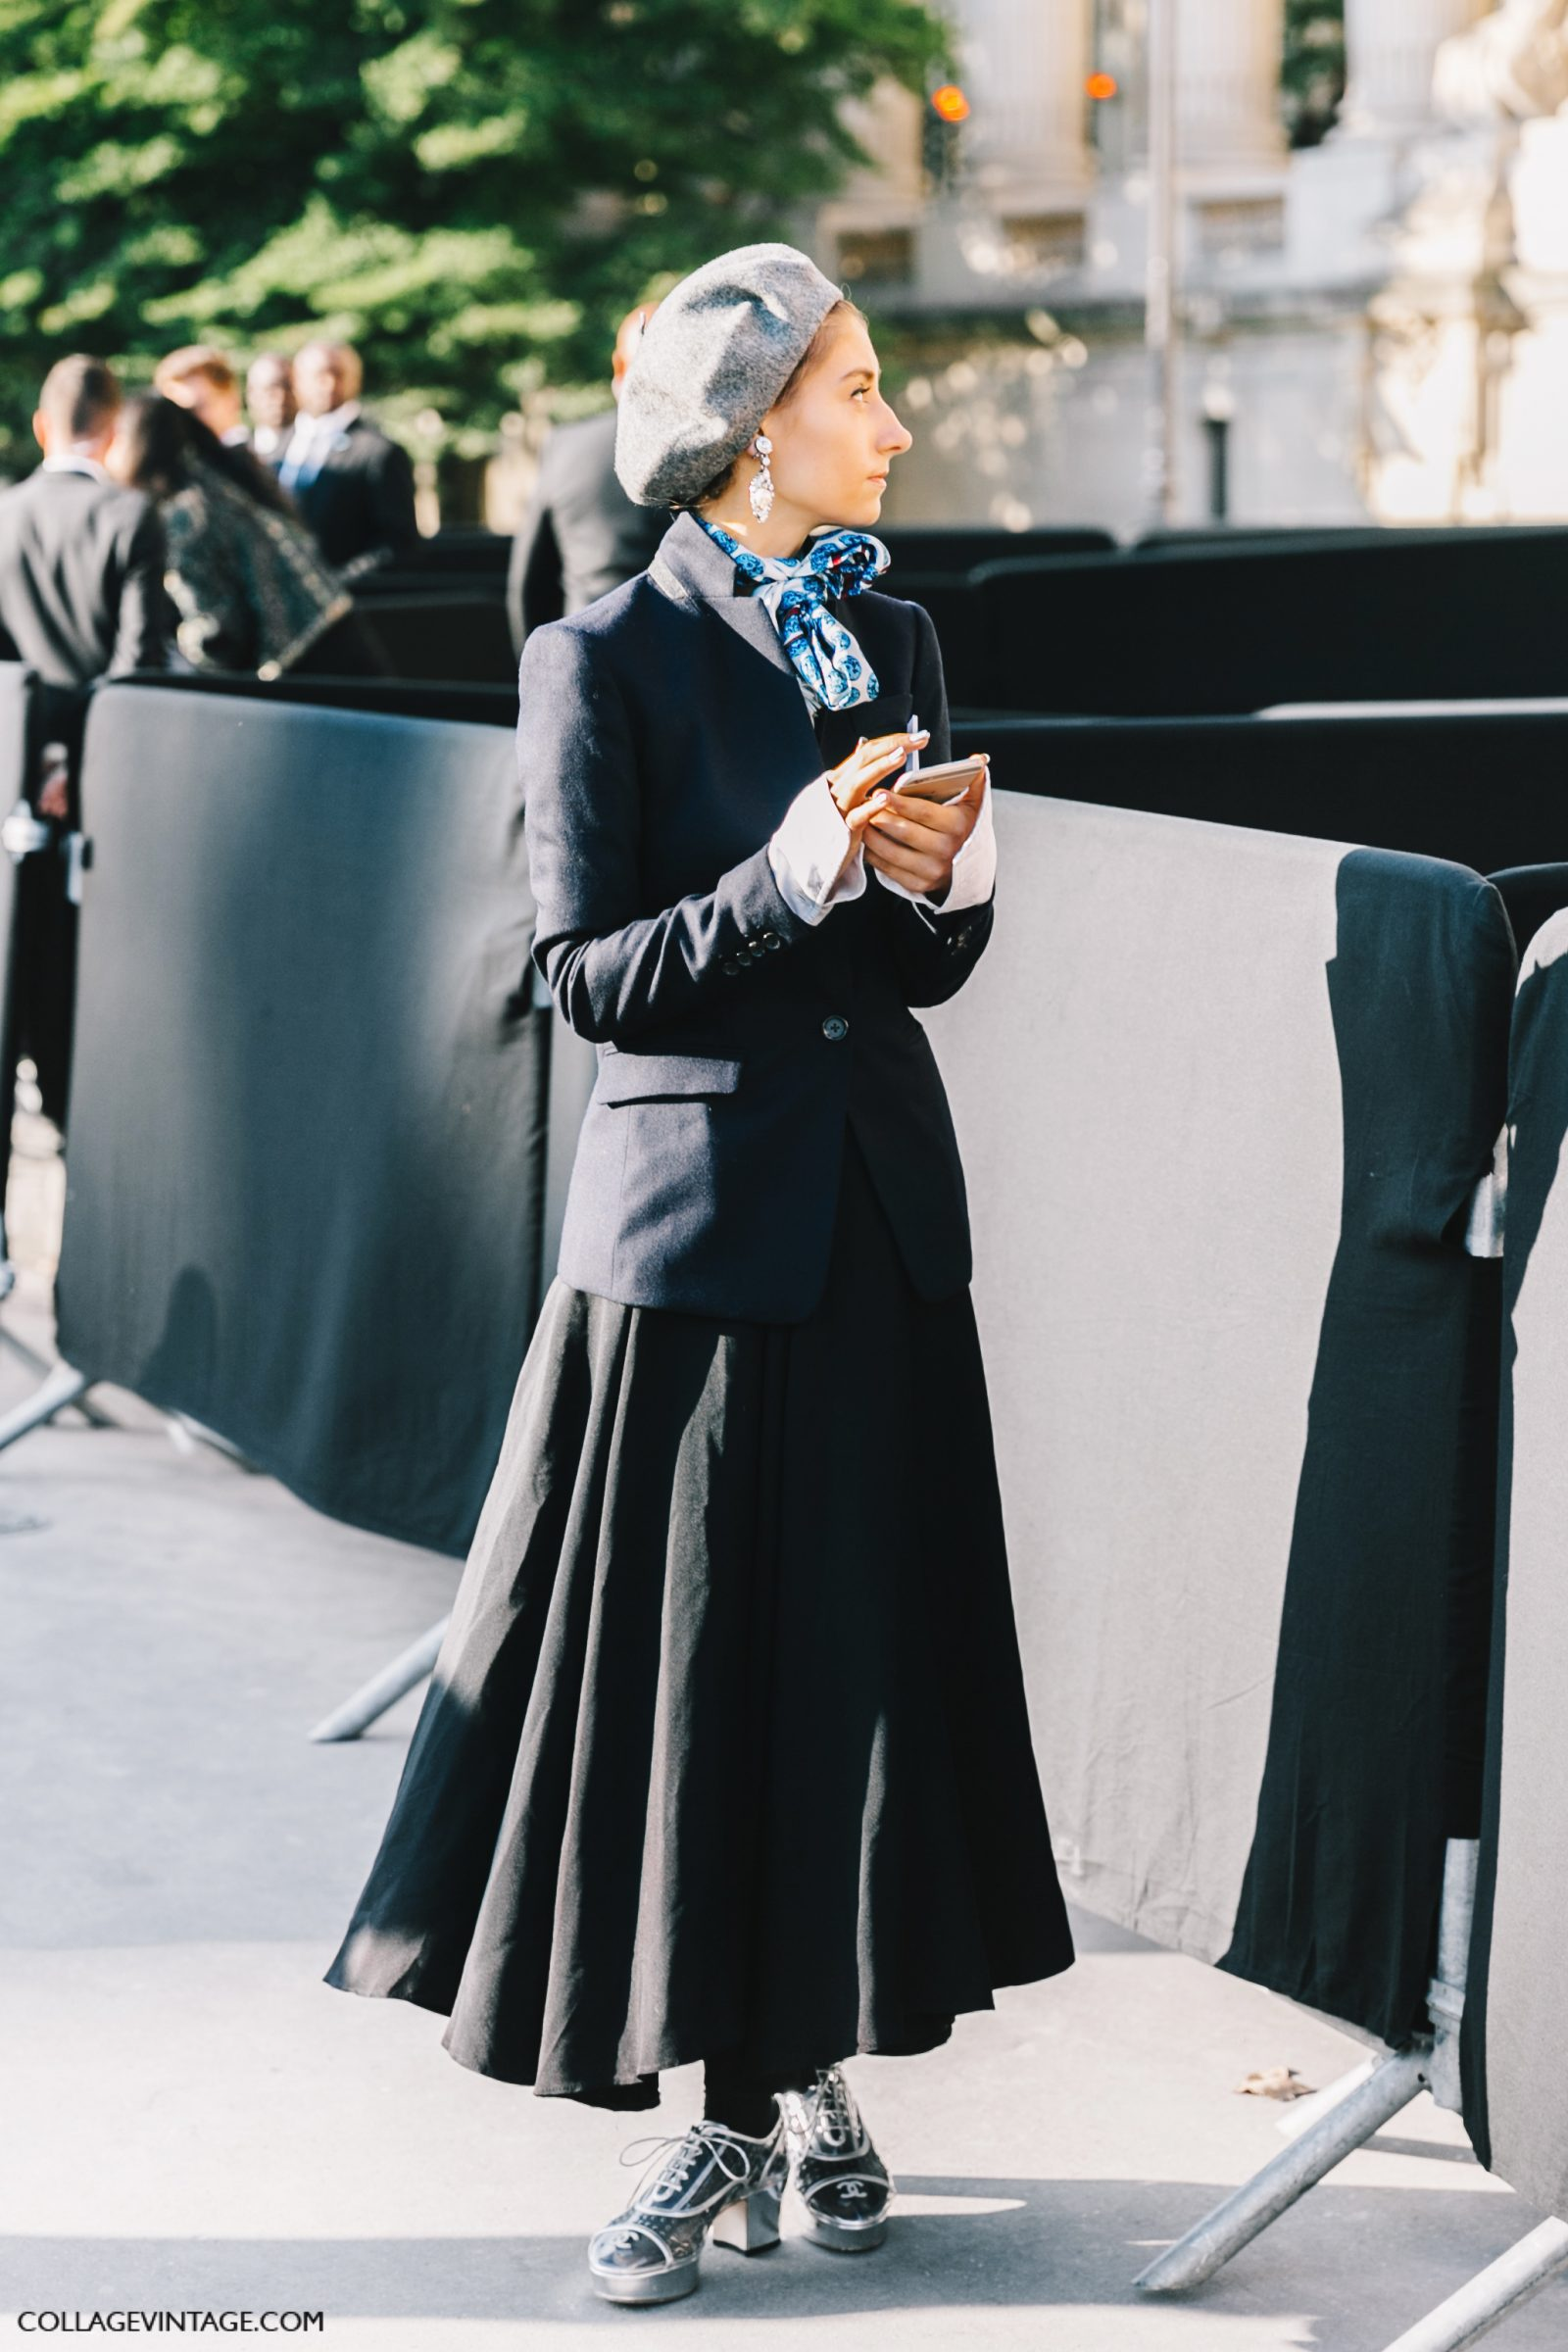 pfw-paris_fashion_week_ss17-street_style-outfits-collage_vintage-chanel-ellery